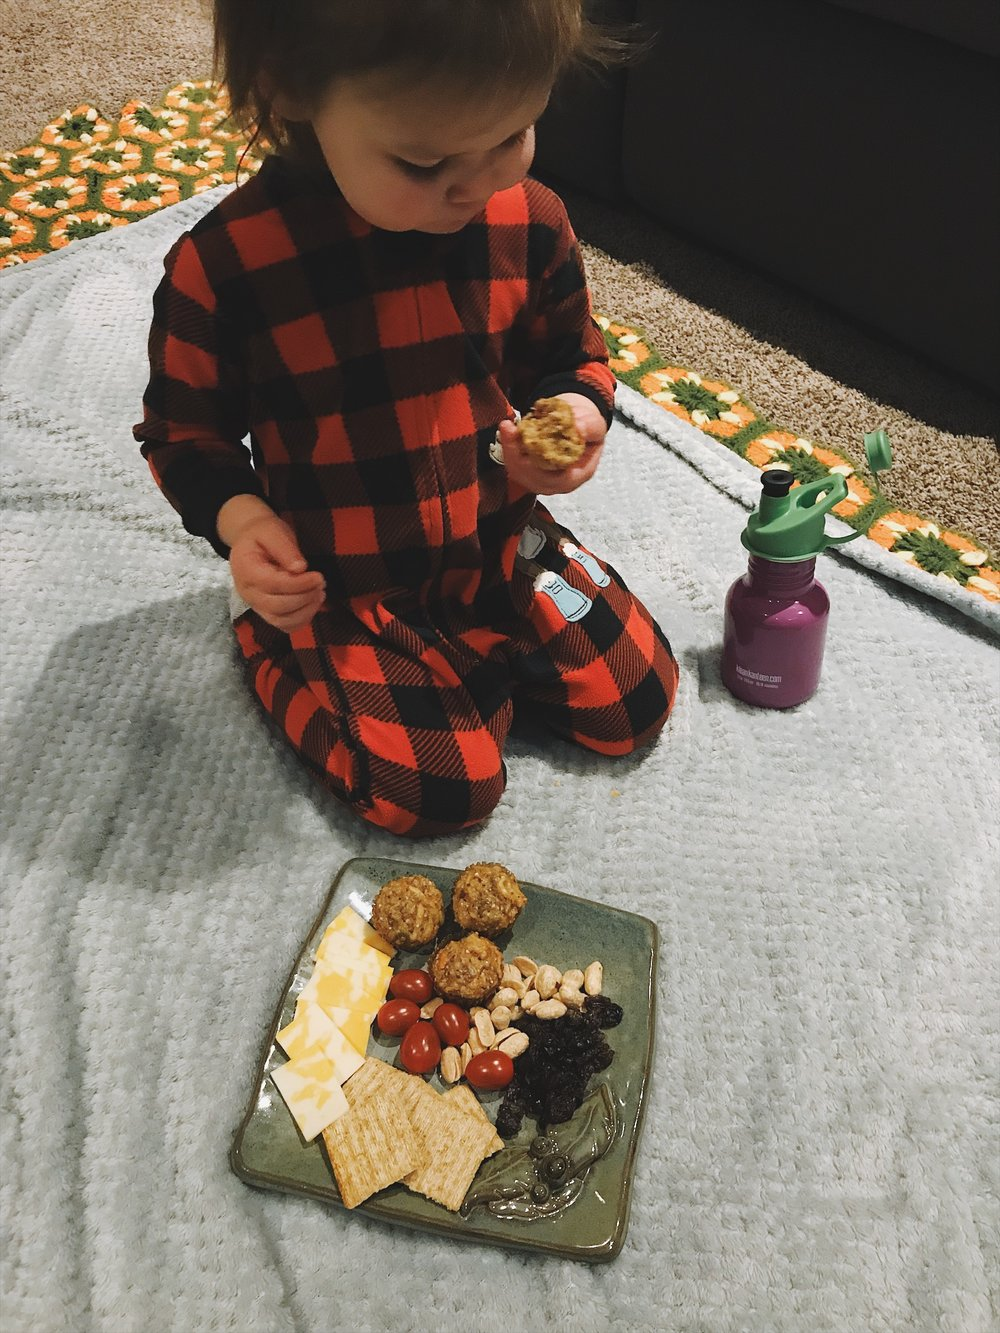 Basement picnics in our PJ's, is there anything better!?